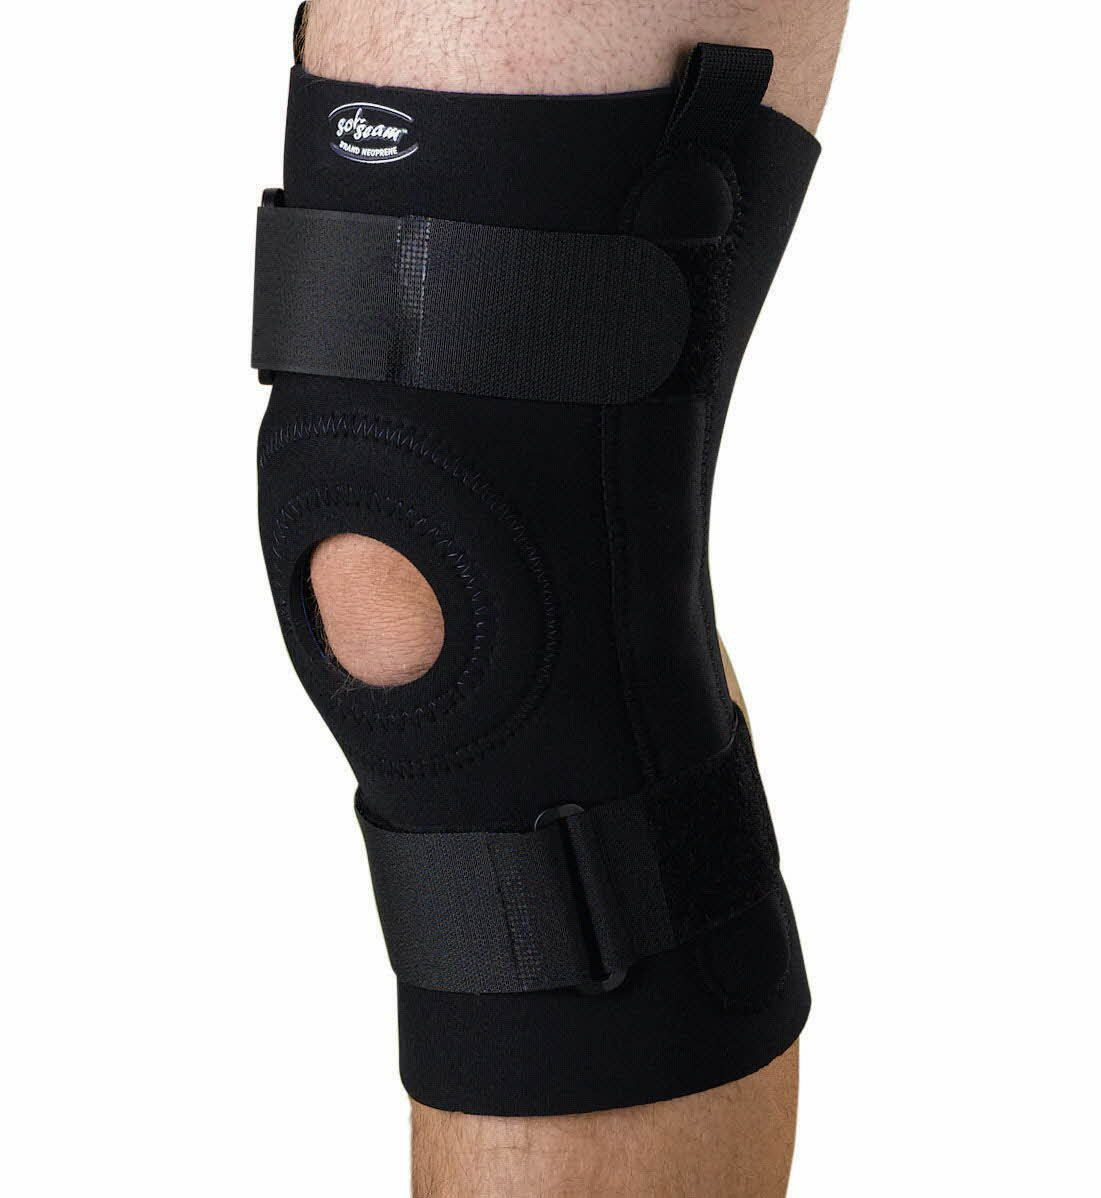 Curad U-Shaped Hinged Knee Support, Black, Large (Pack of 4)